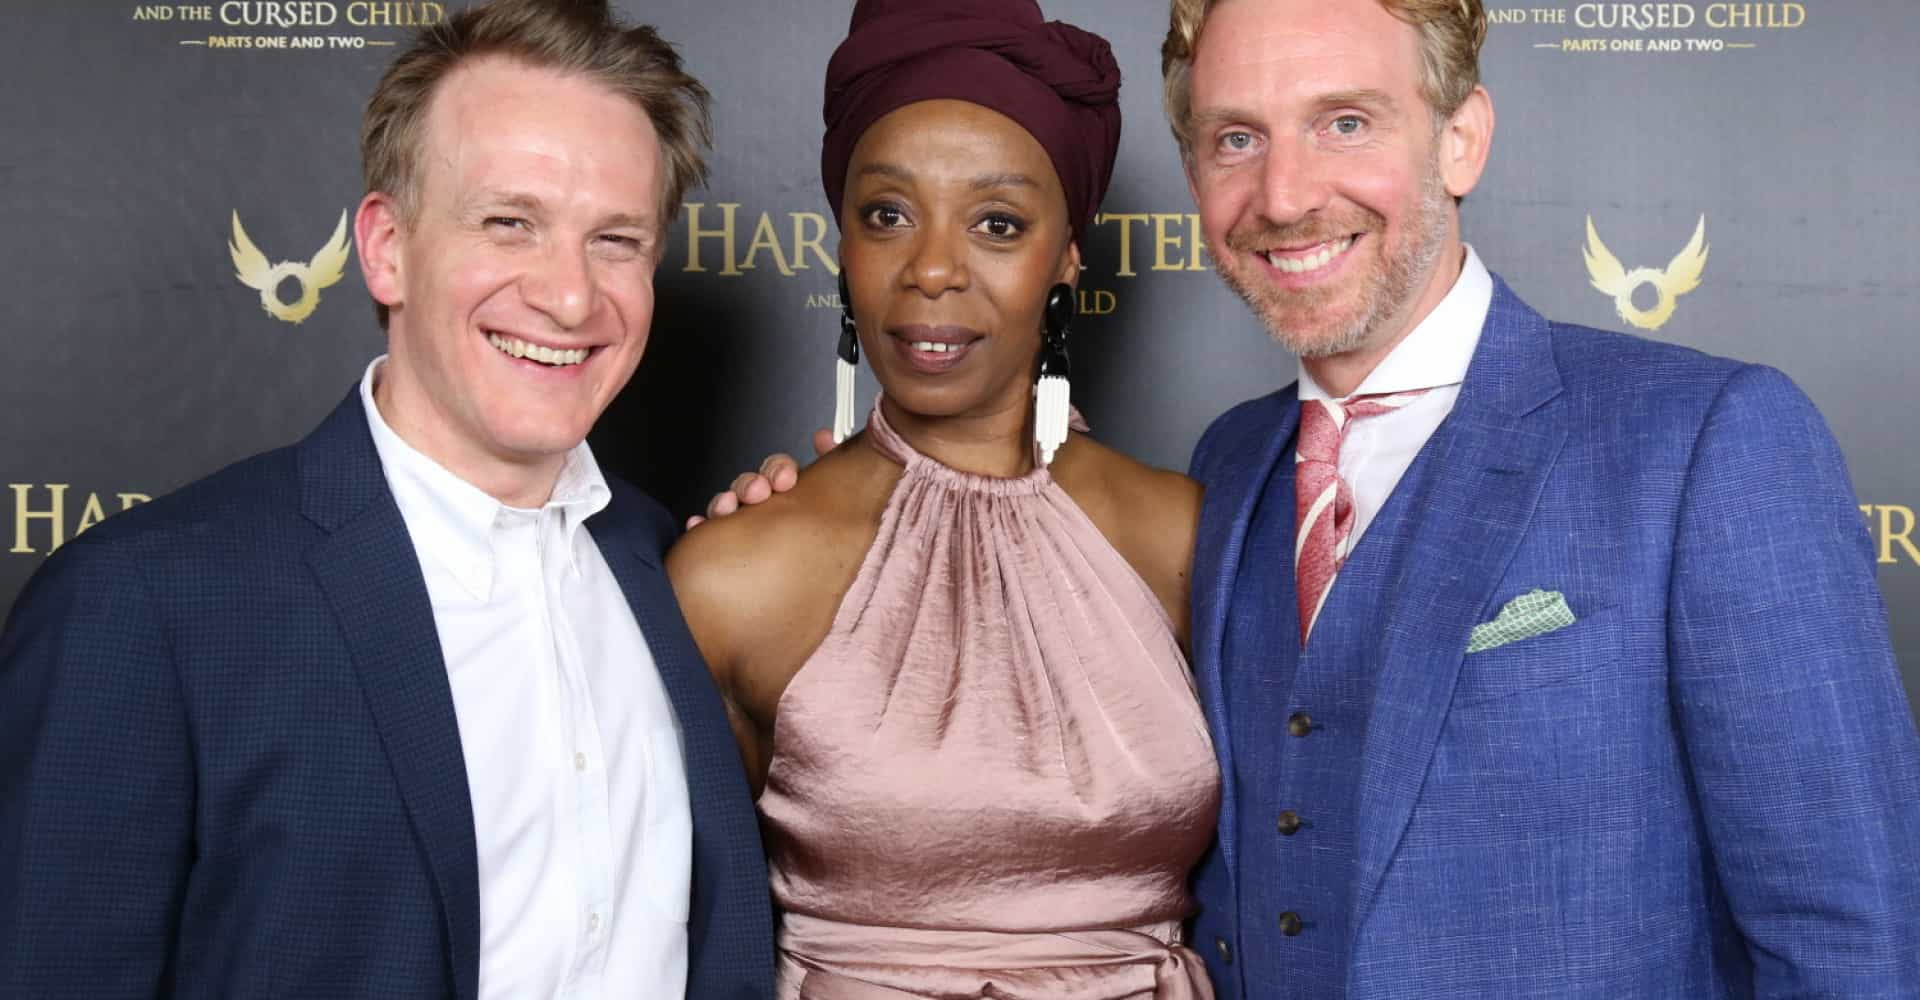 Meet the award-winning stars of 'Harry Potter and the Cursed Child'